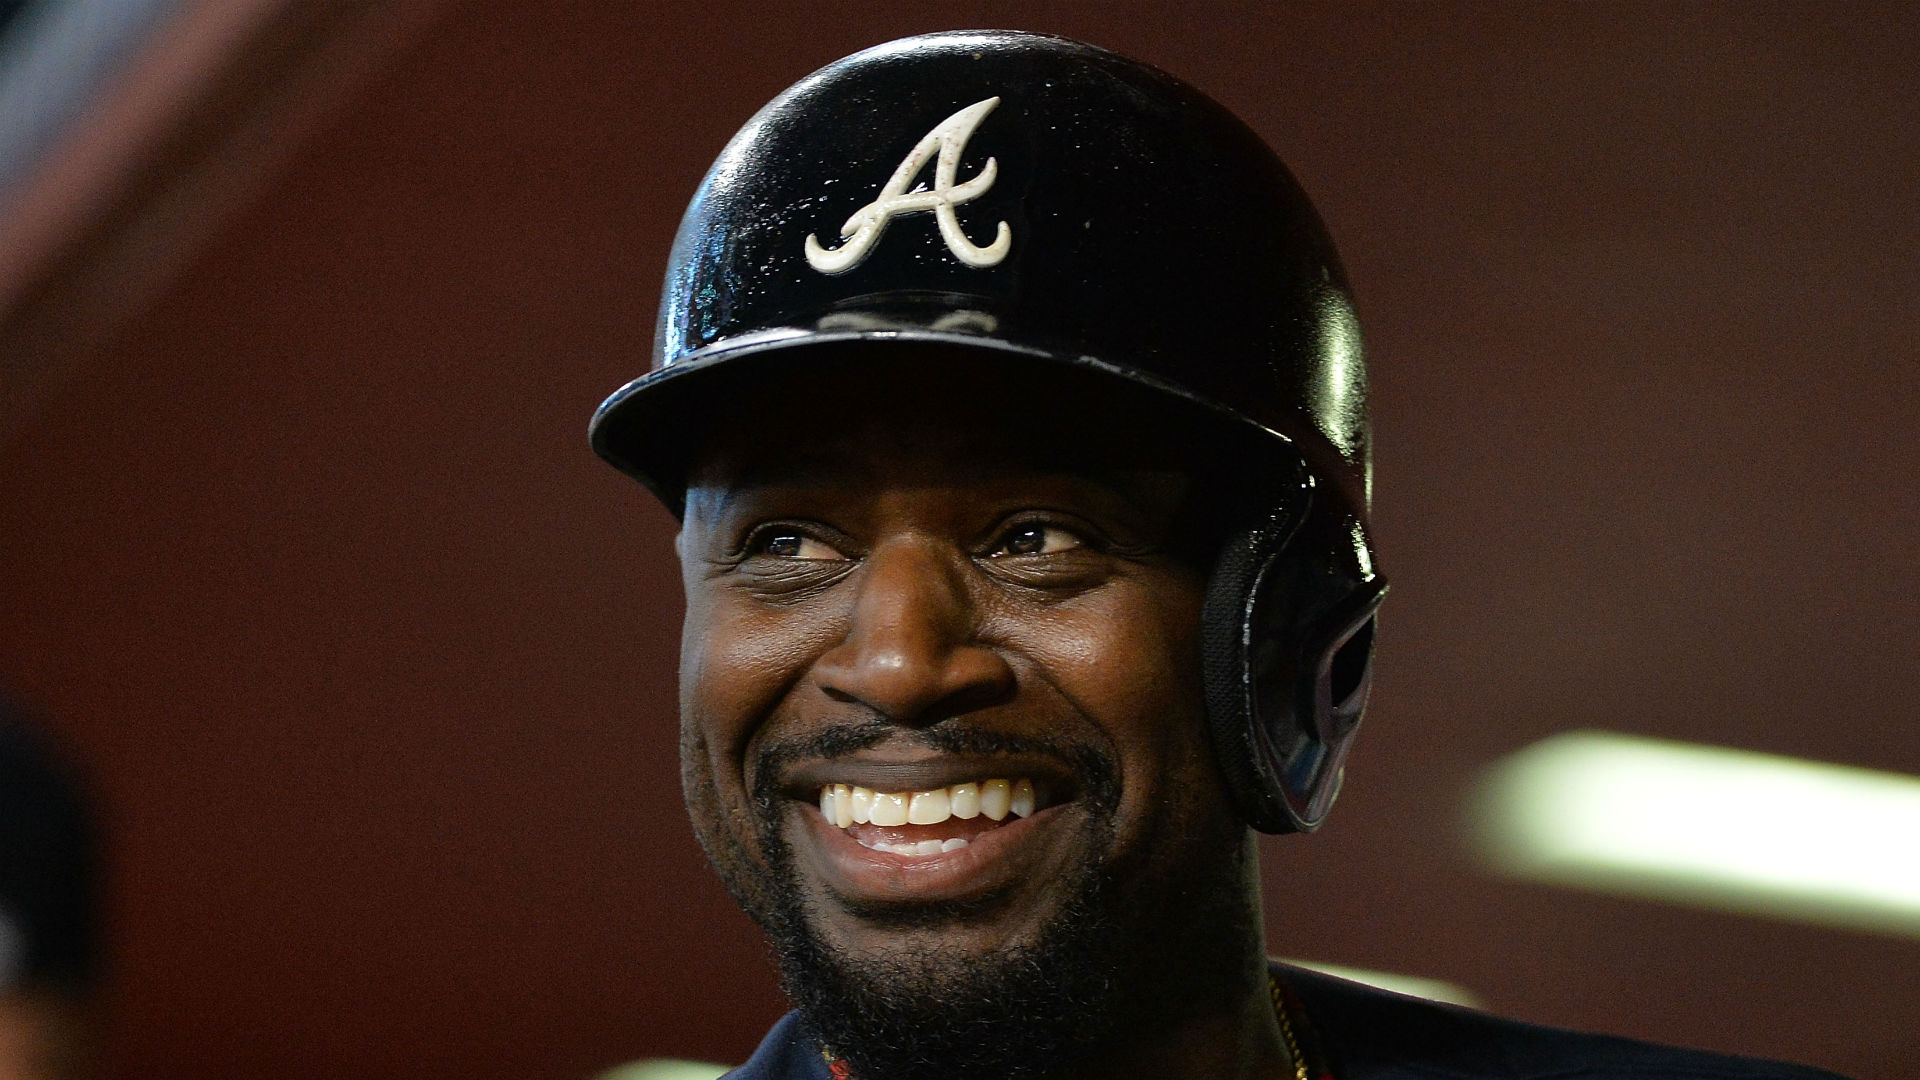 Angels continue trade deadline shakeup, acquire Brandon Phillips from Braves